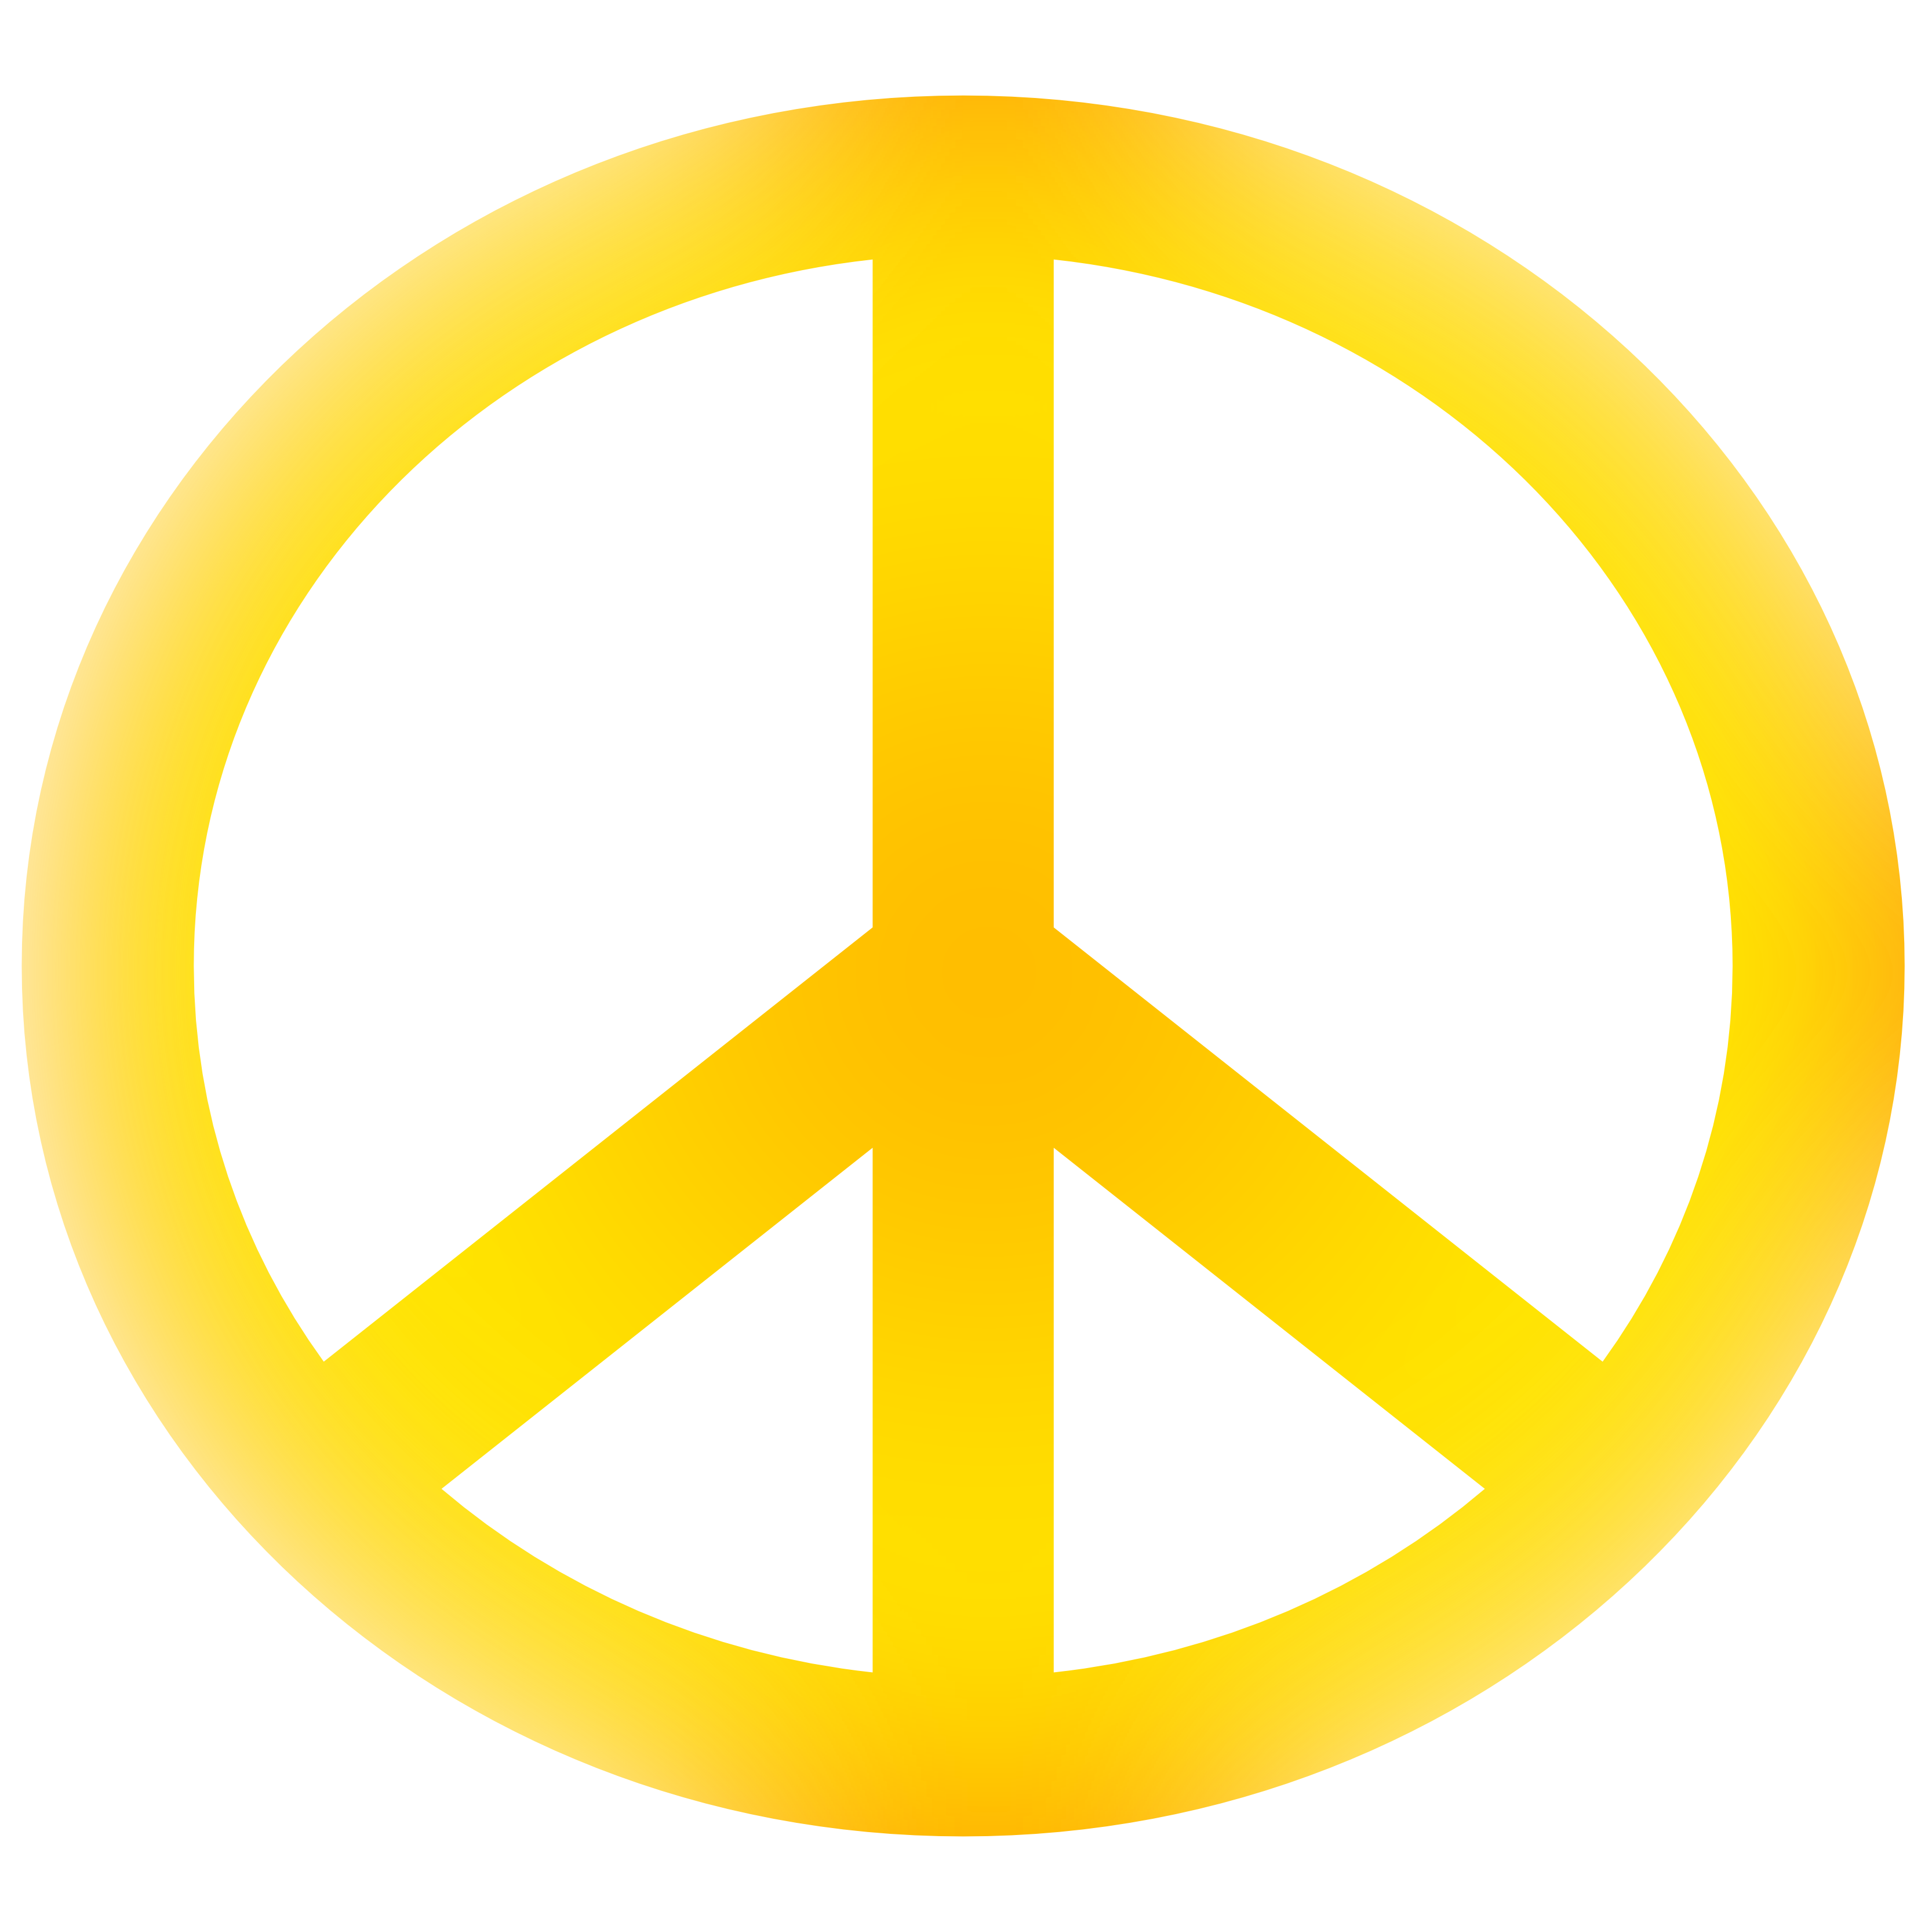 Peace sign clip art free clipart images 3